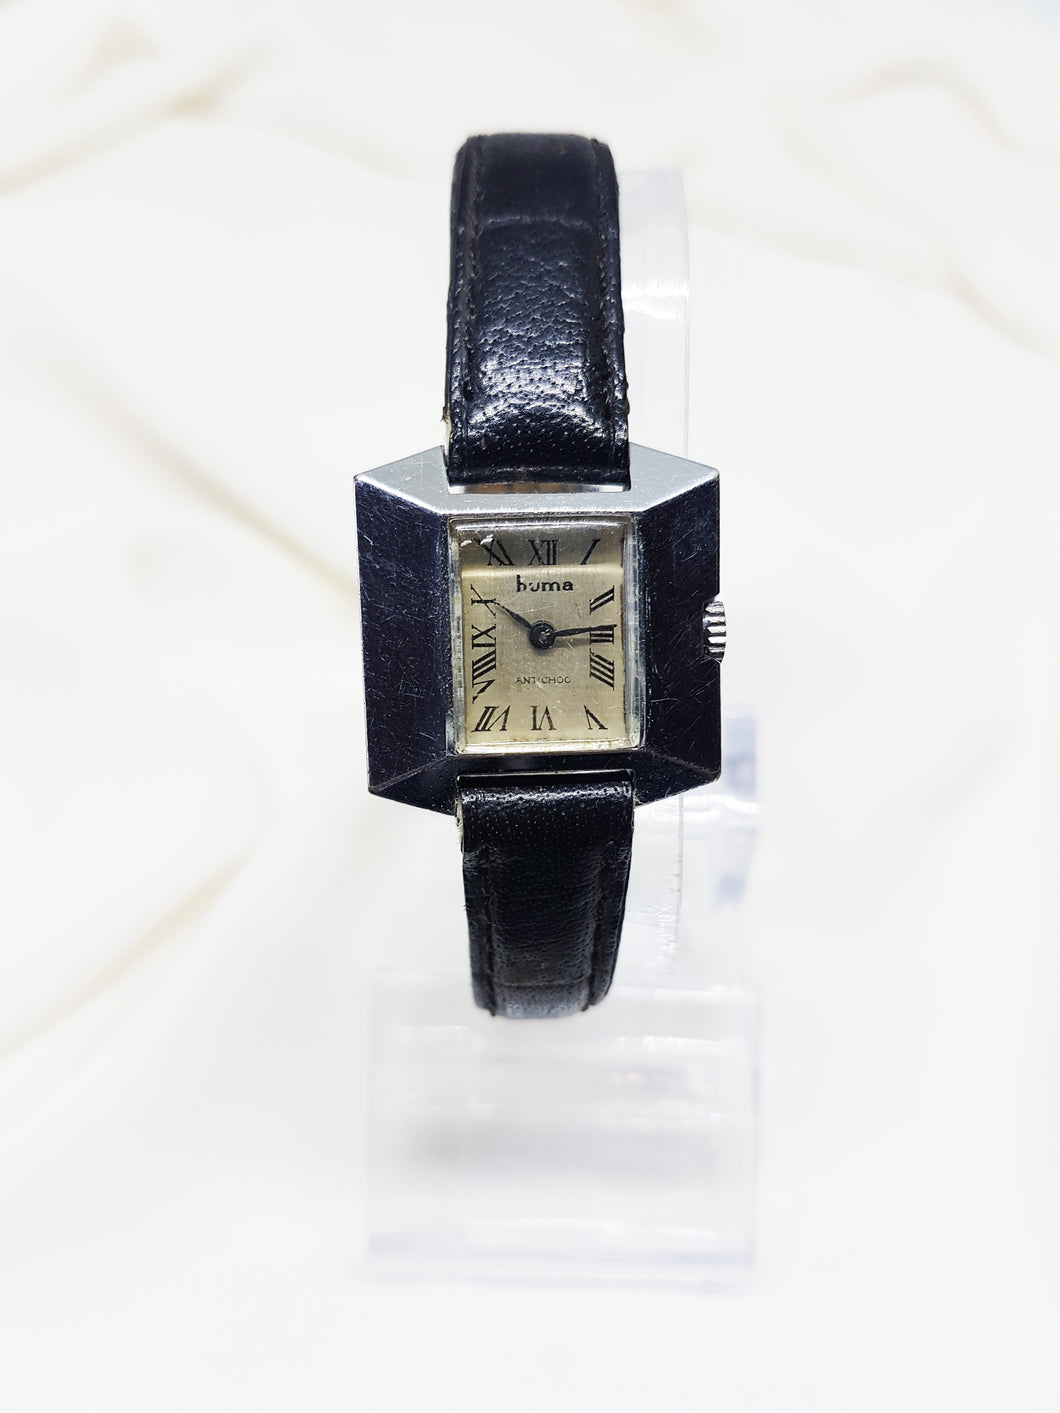 Huma Art Deco Watch for Women, Mechanical Ladies Watch - Vintage Radar